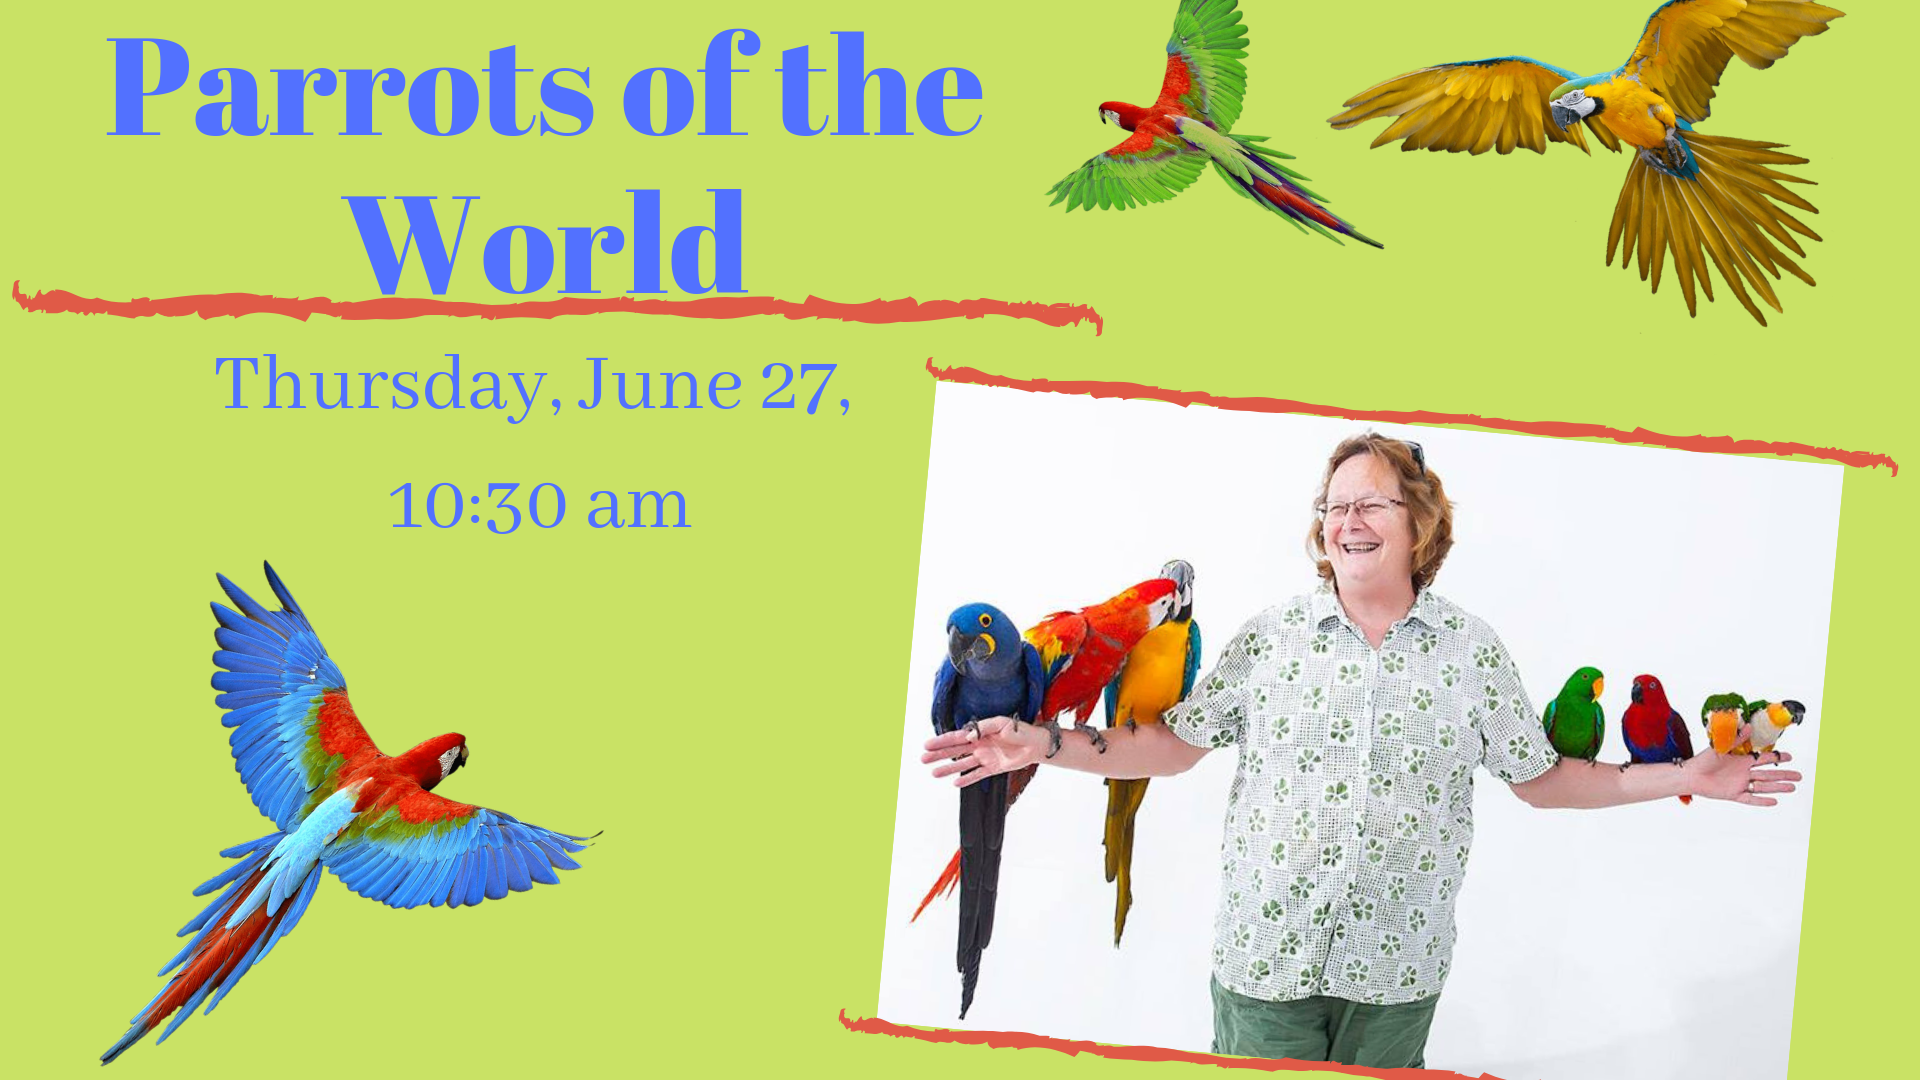 parrots of the world image